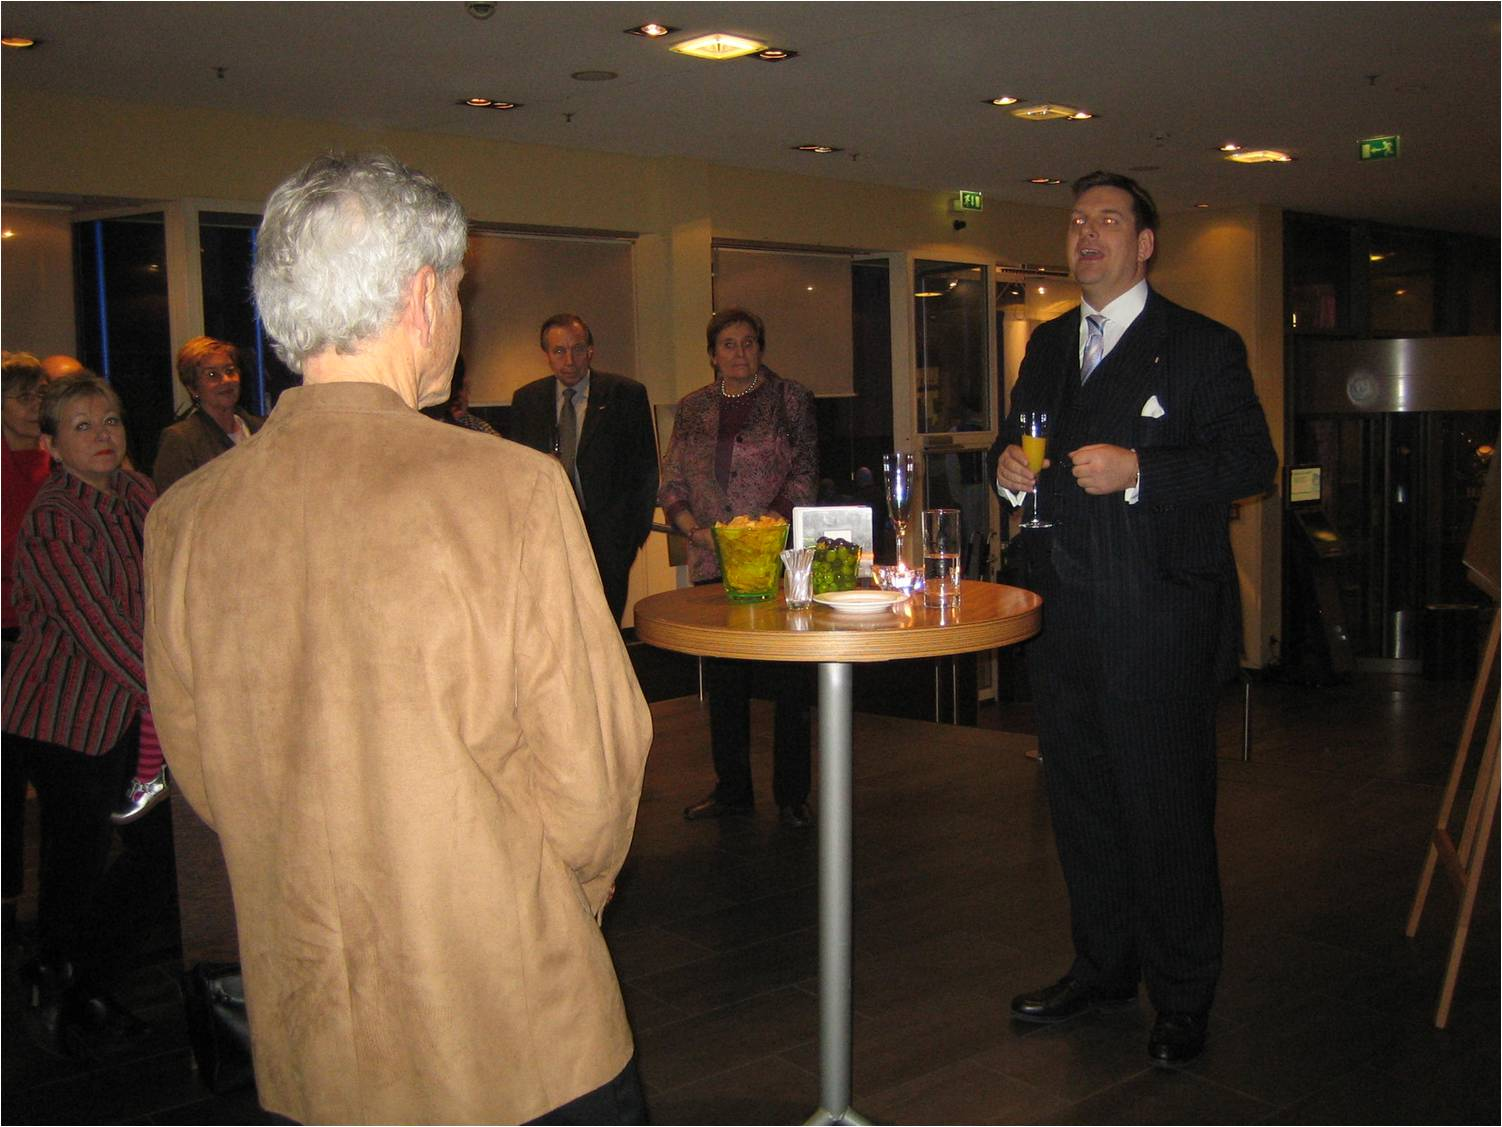 Mr Jorg Potreek , Cluster General Manager, Opening The Exhibition  - Hilton Cologne, 2008